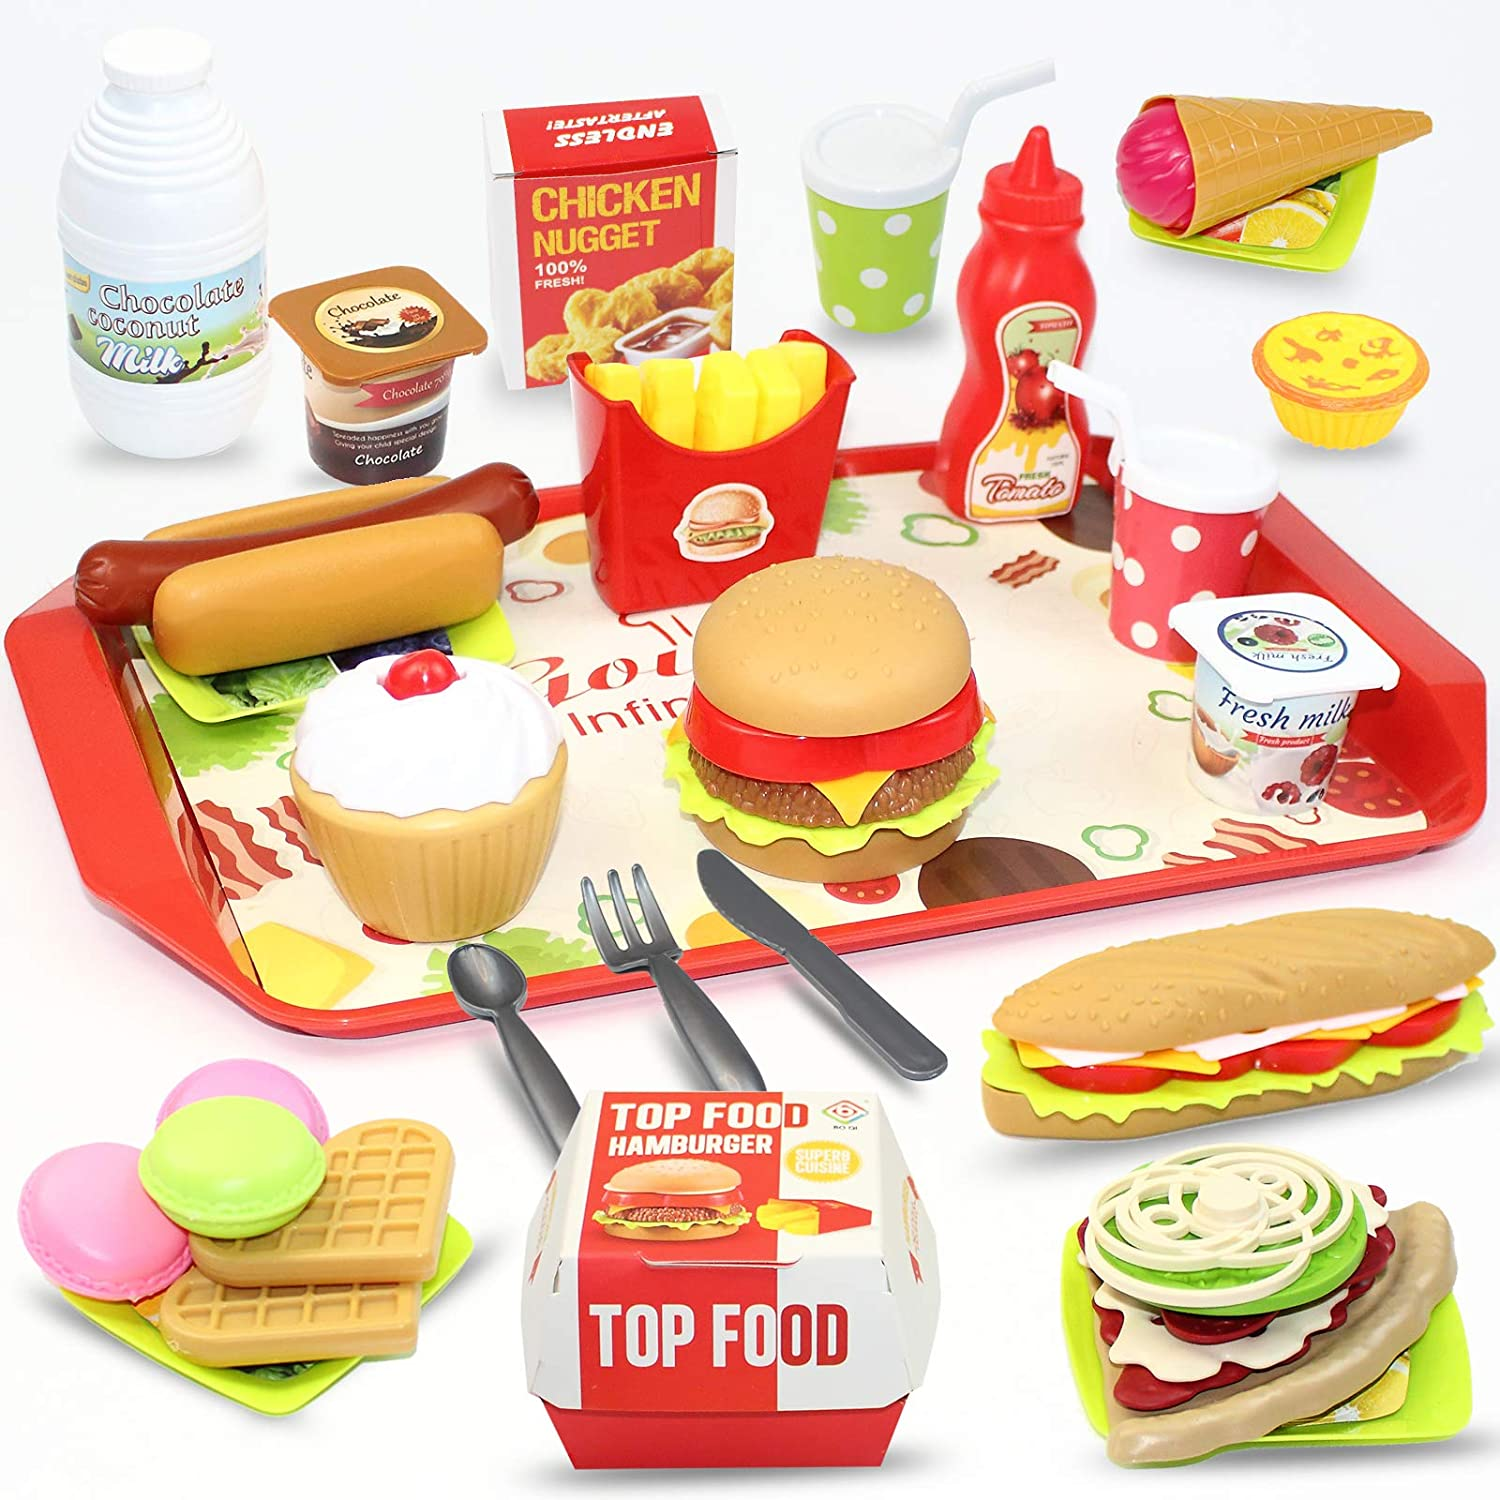 Toy Food Pretend Play Food Set,Pretend Role Play Toys for Educational Preschool Learning,Cutting Pizza Hamburger Fruit Playset for Girls and Boys Ages 3-9